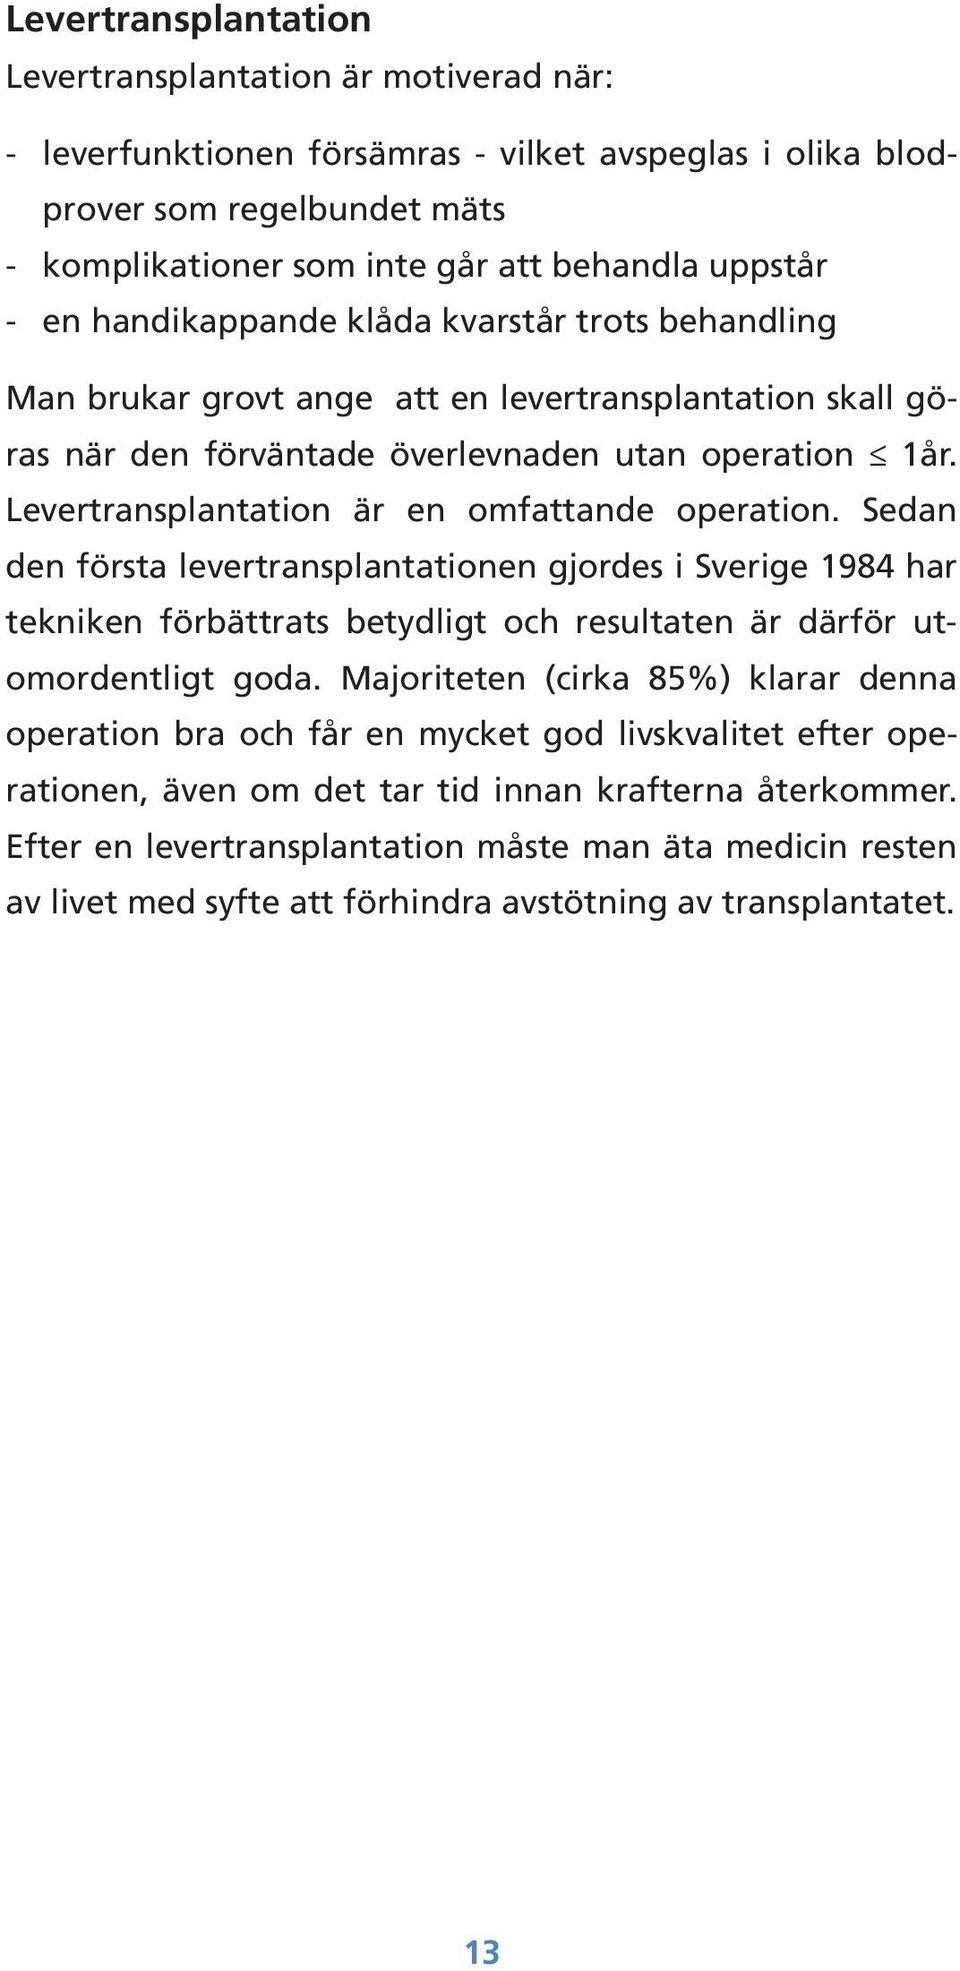 Levertransplantation är en omfattande operation. Sedan den första levertransplantationen gjordes i Sverige 1984 har tekniken förbättrats betydligt och resultaten är därför utomordentligt goda.